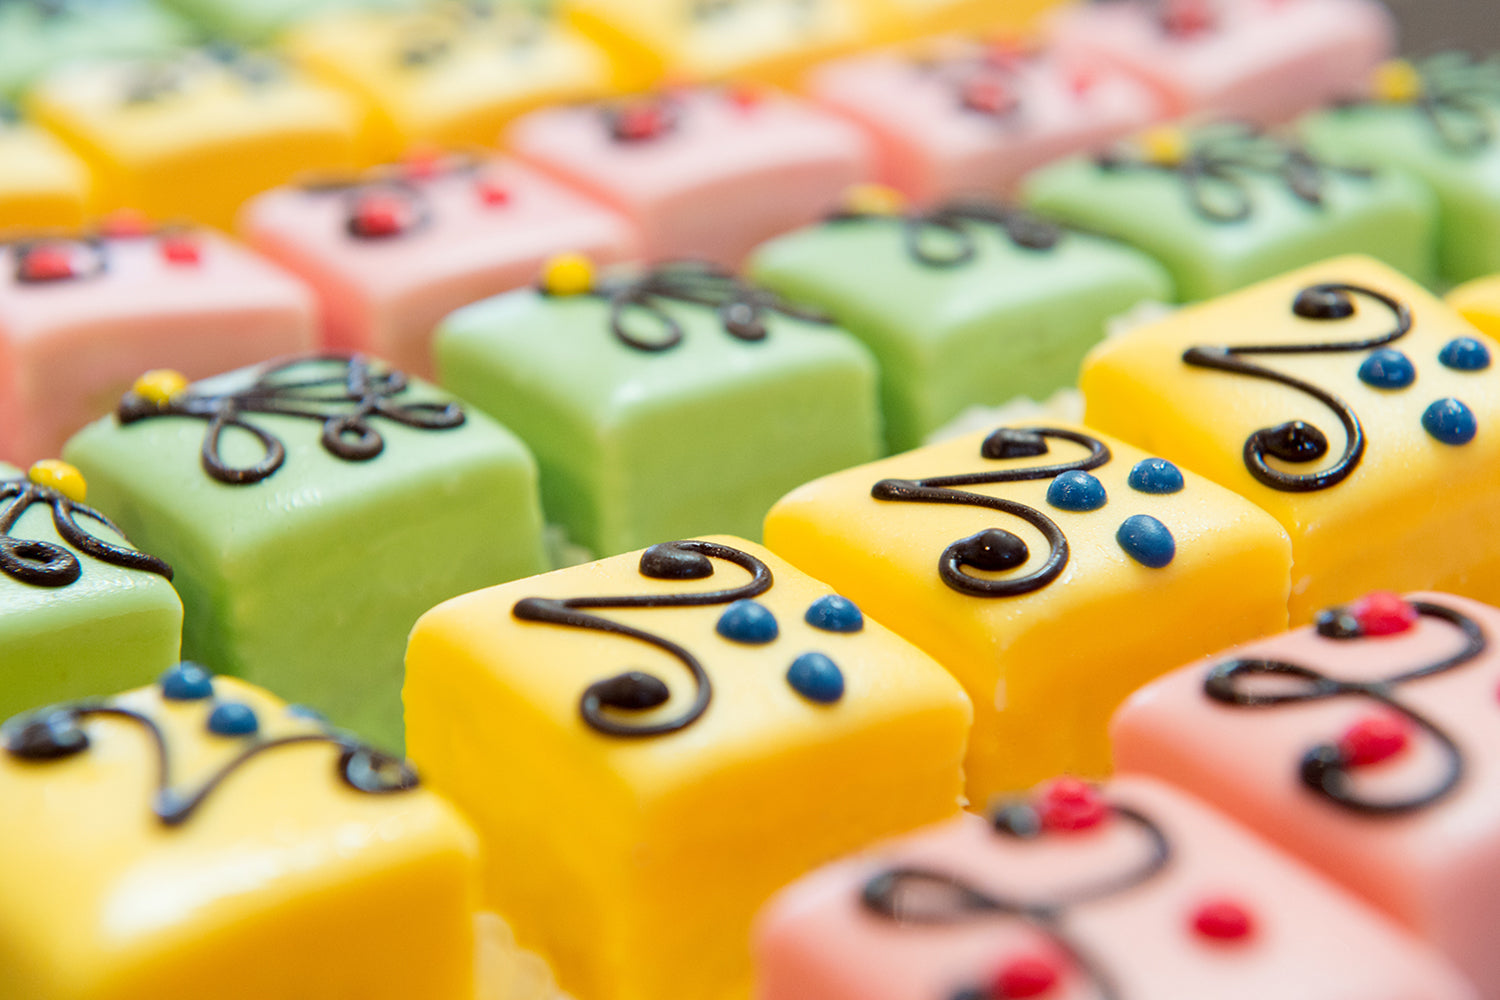 petit fours with pink, yellow, and green hybrid glaze